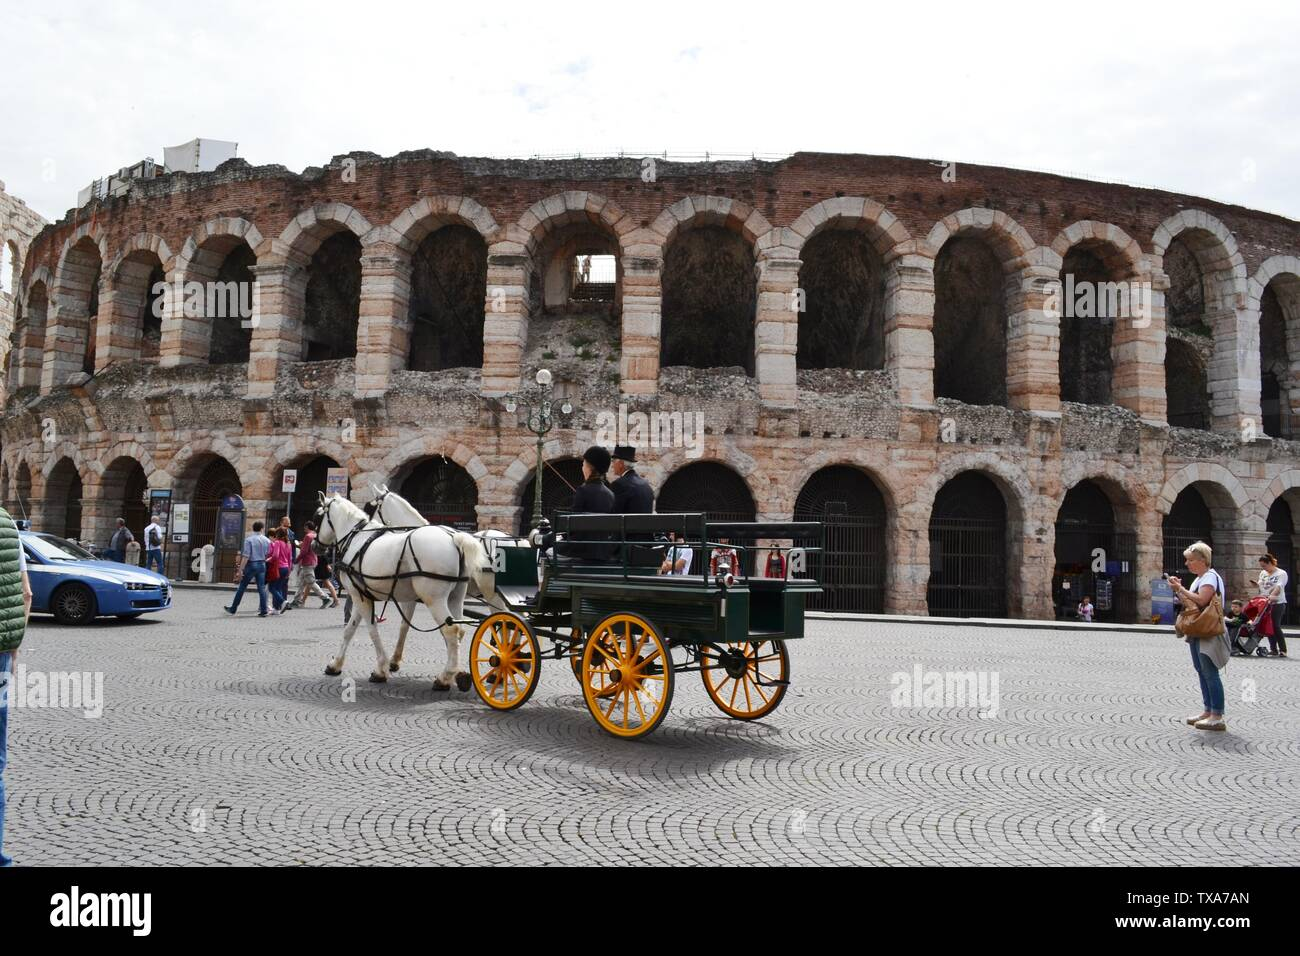 Verona/Italy - May 9, 2015: Two horses carriage moving in Piazza Bra along Arena di Verona, the famous summer open stage theater. Stock Photo